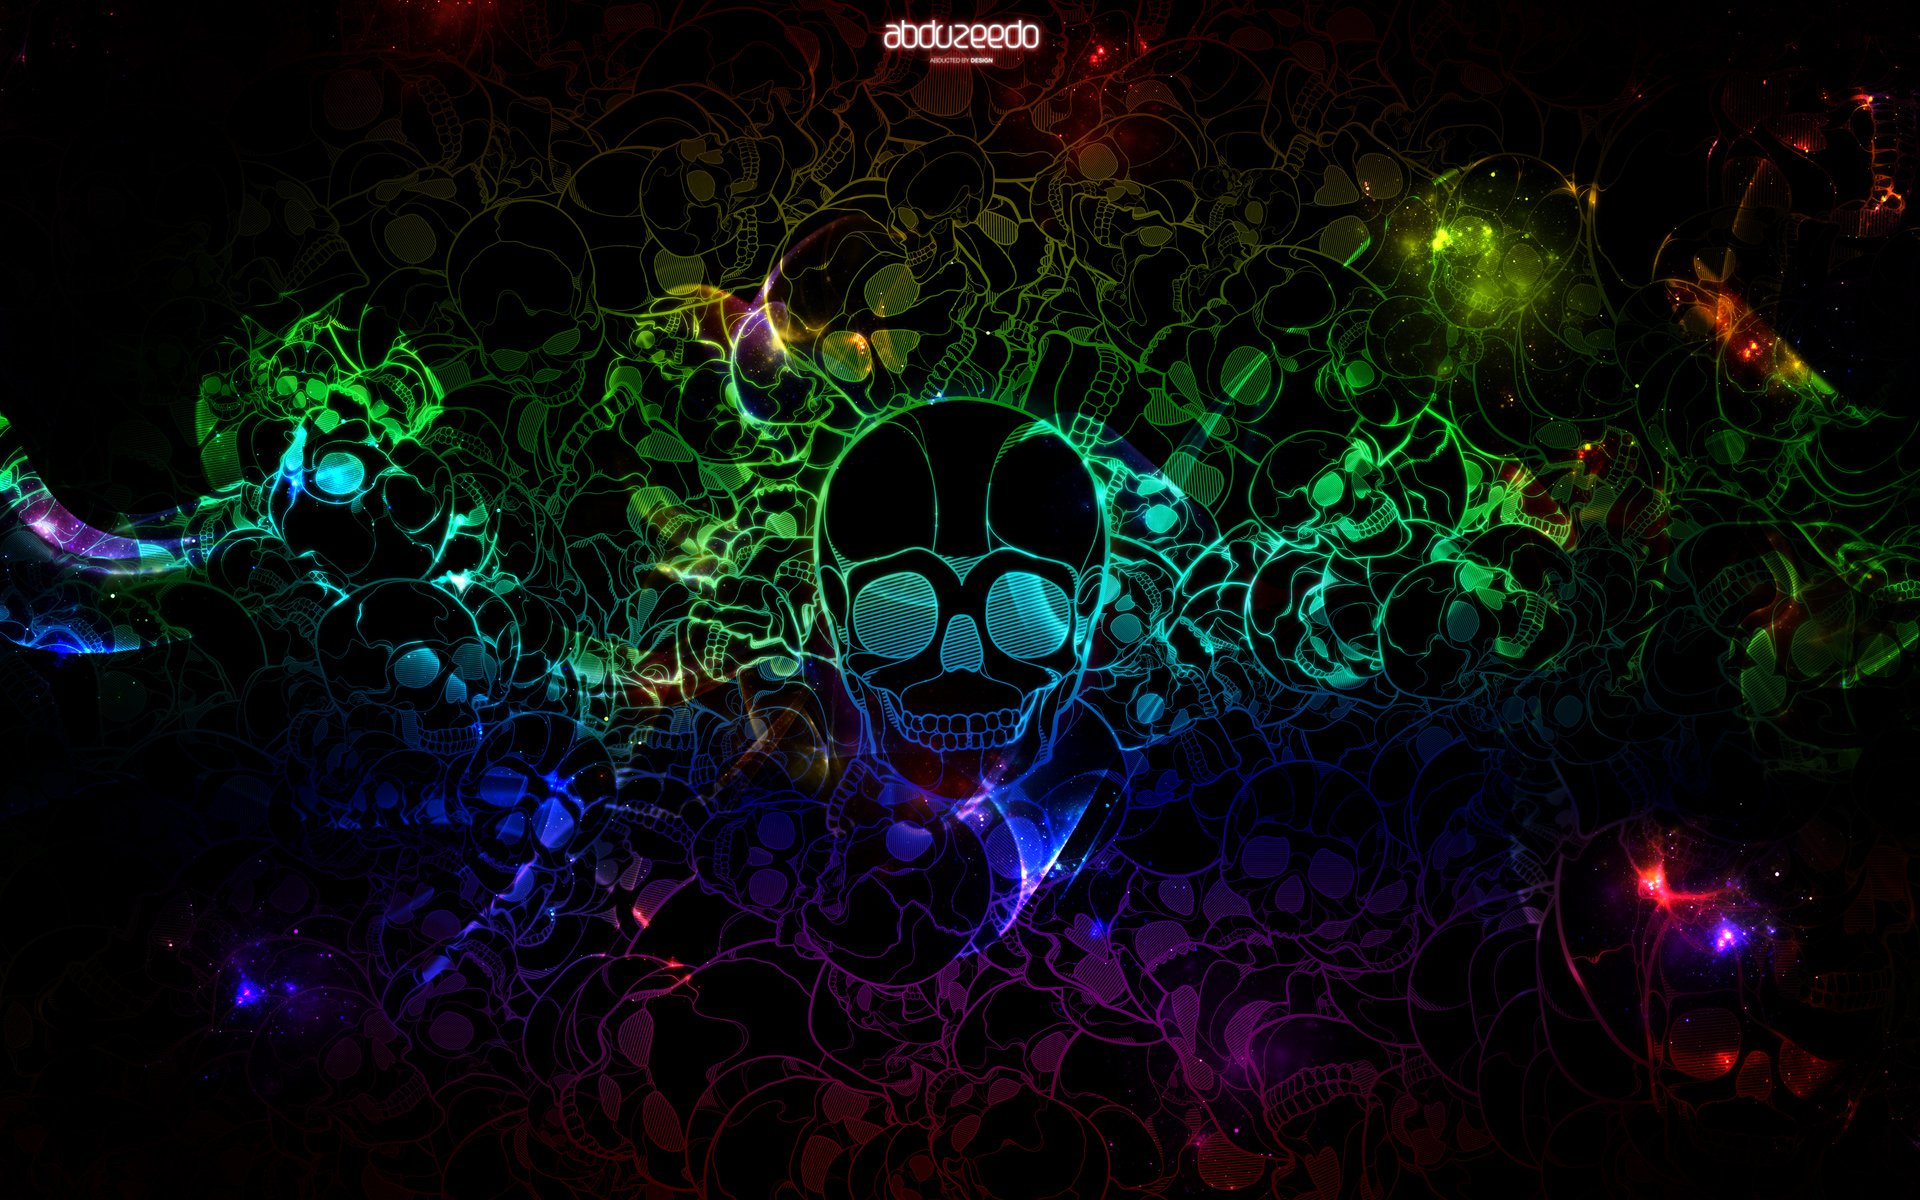 Skull Wallpapers For Desktop 1920x1200